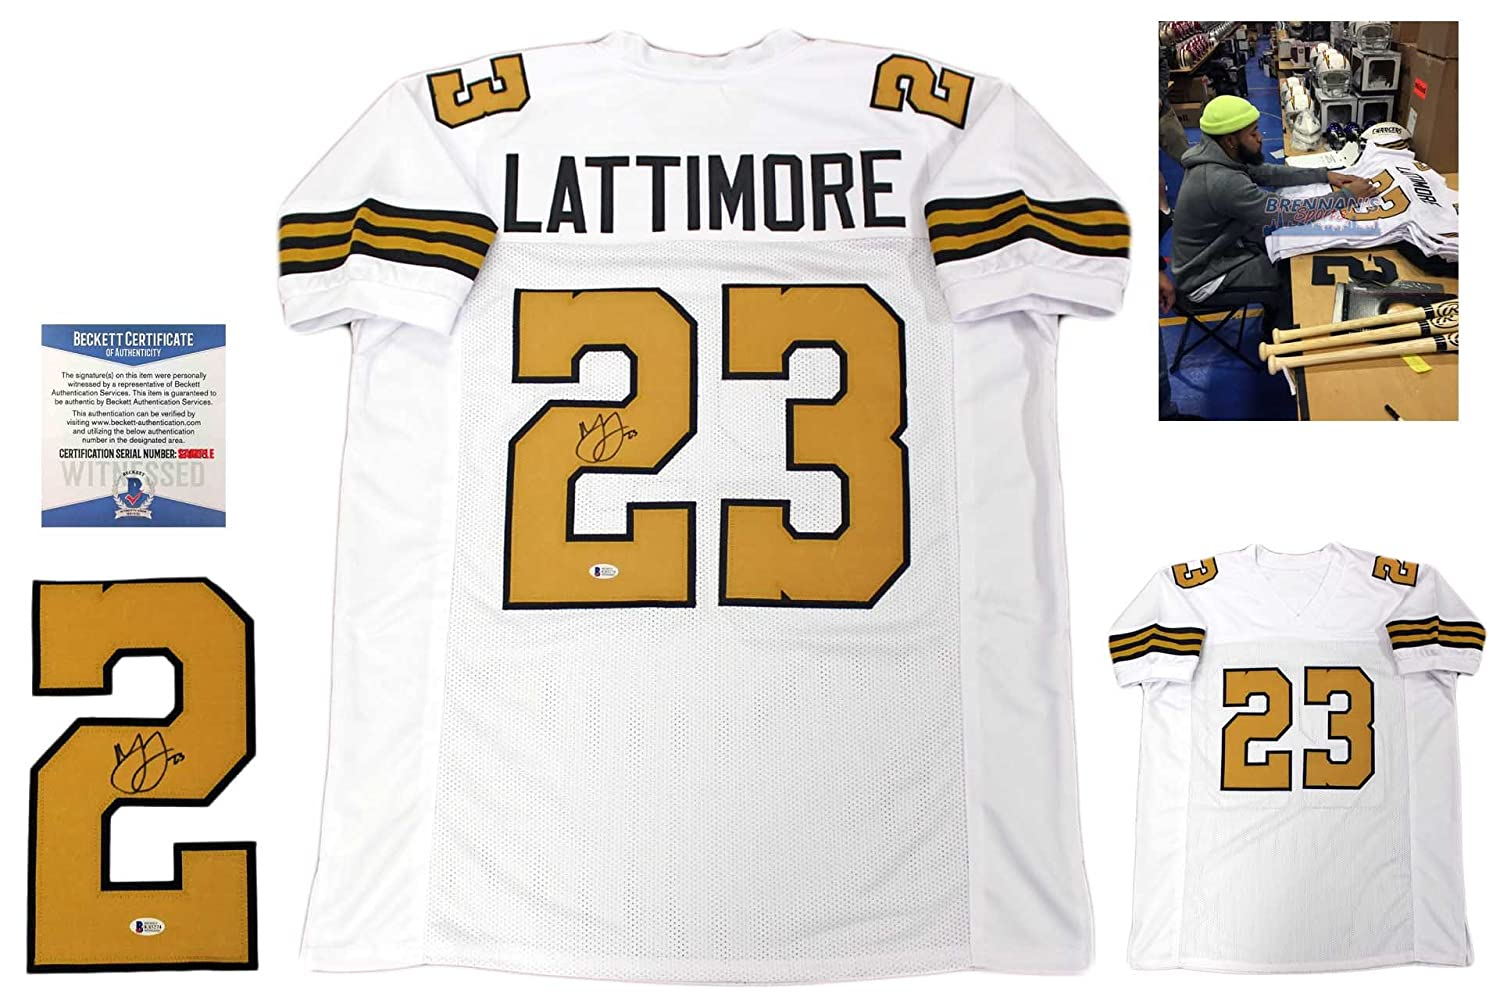 Marshon Lattimore Autographed Signed Jersey - Beckett Authentic - White